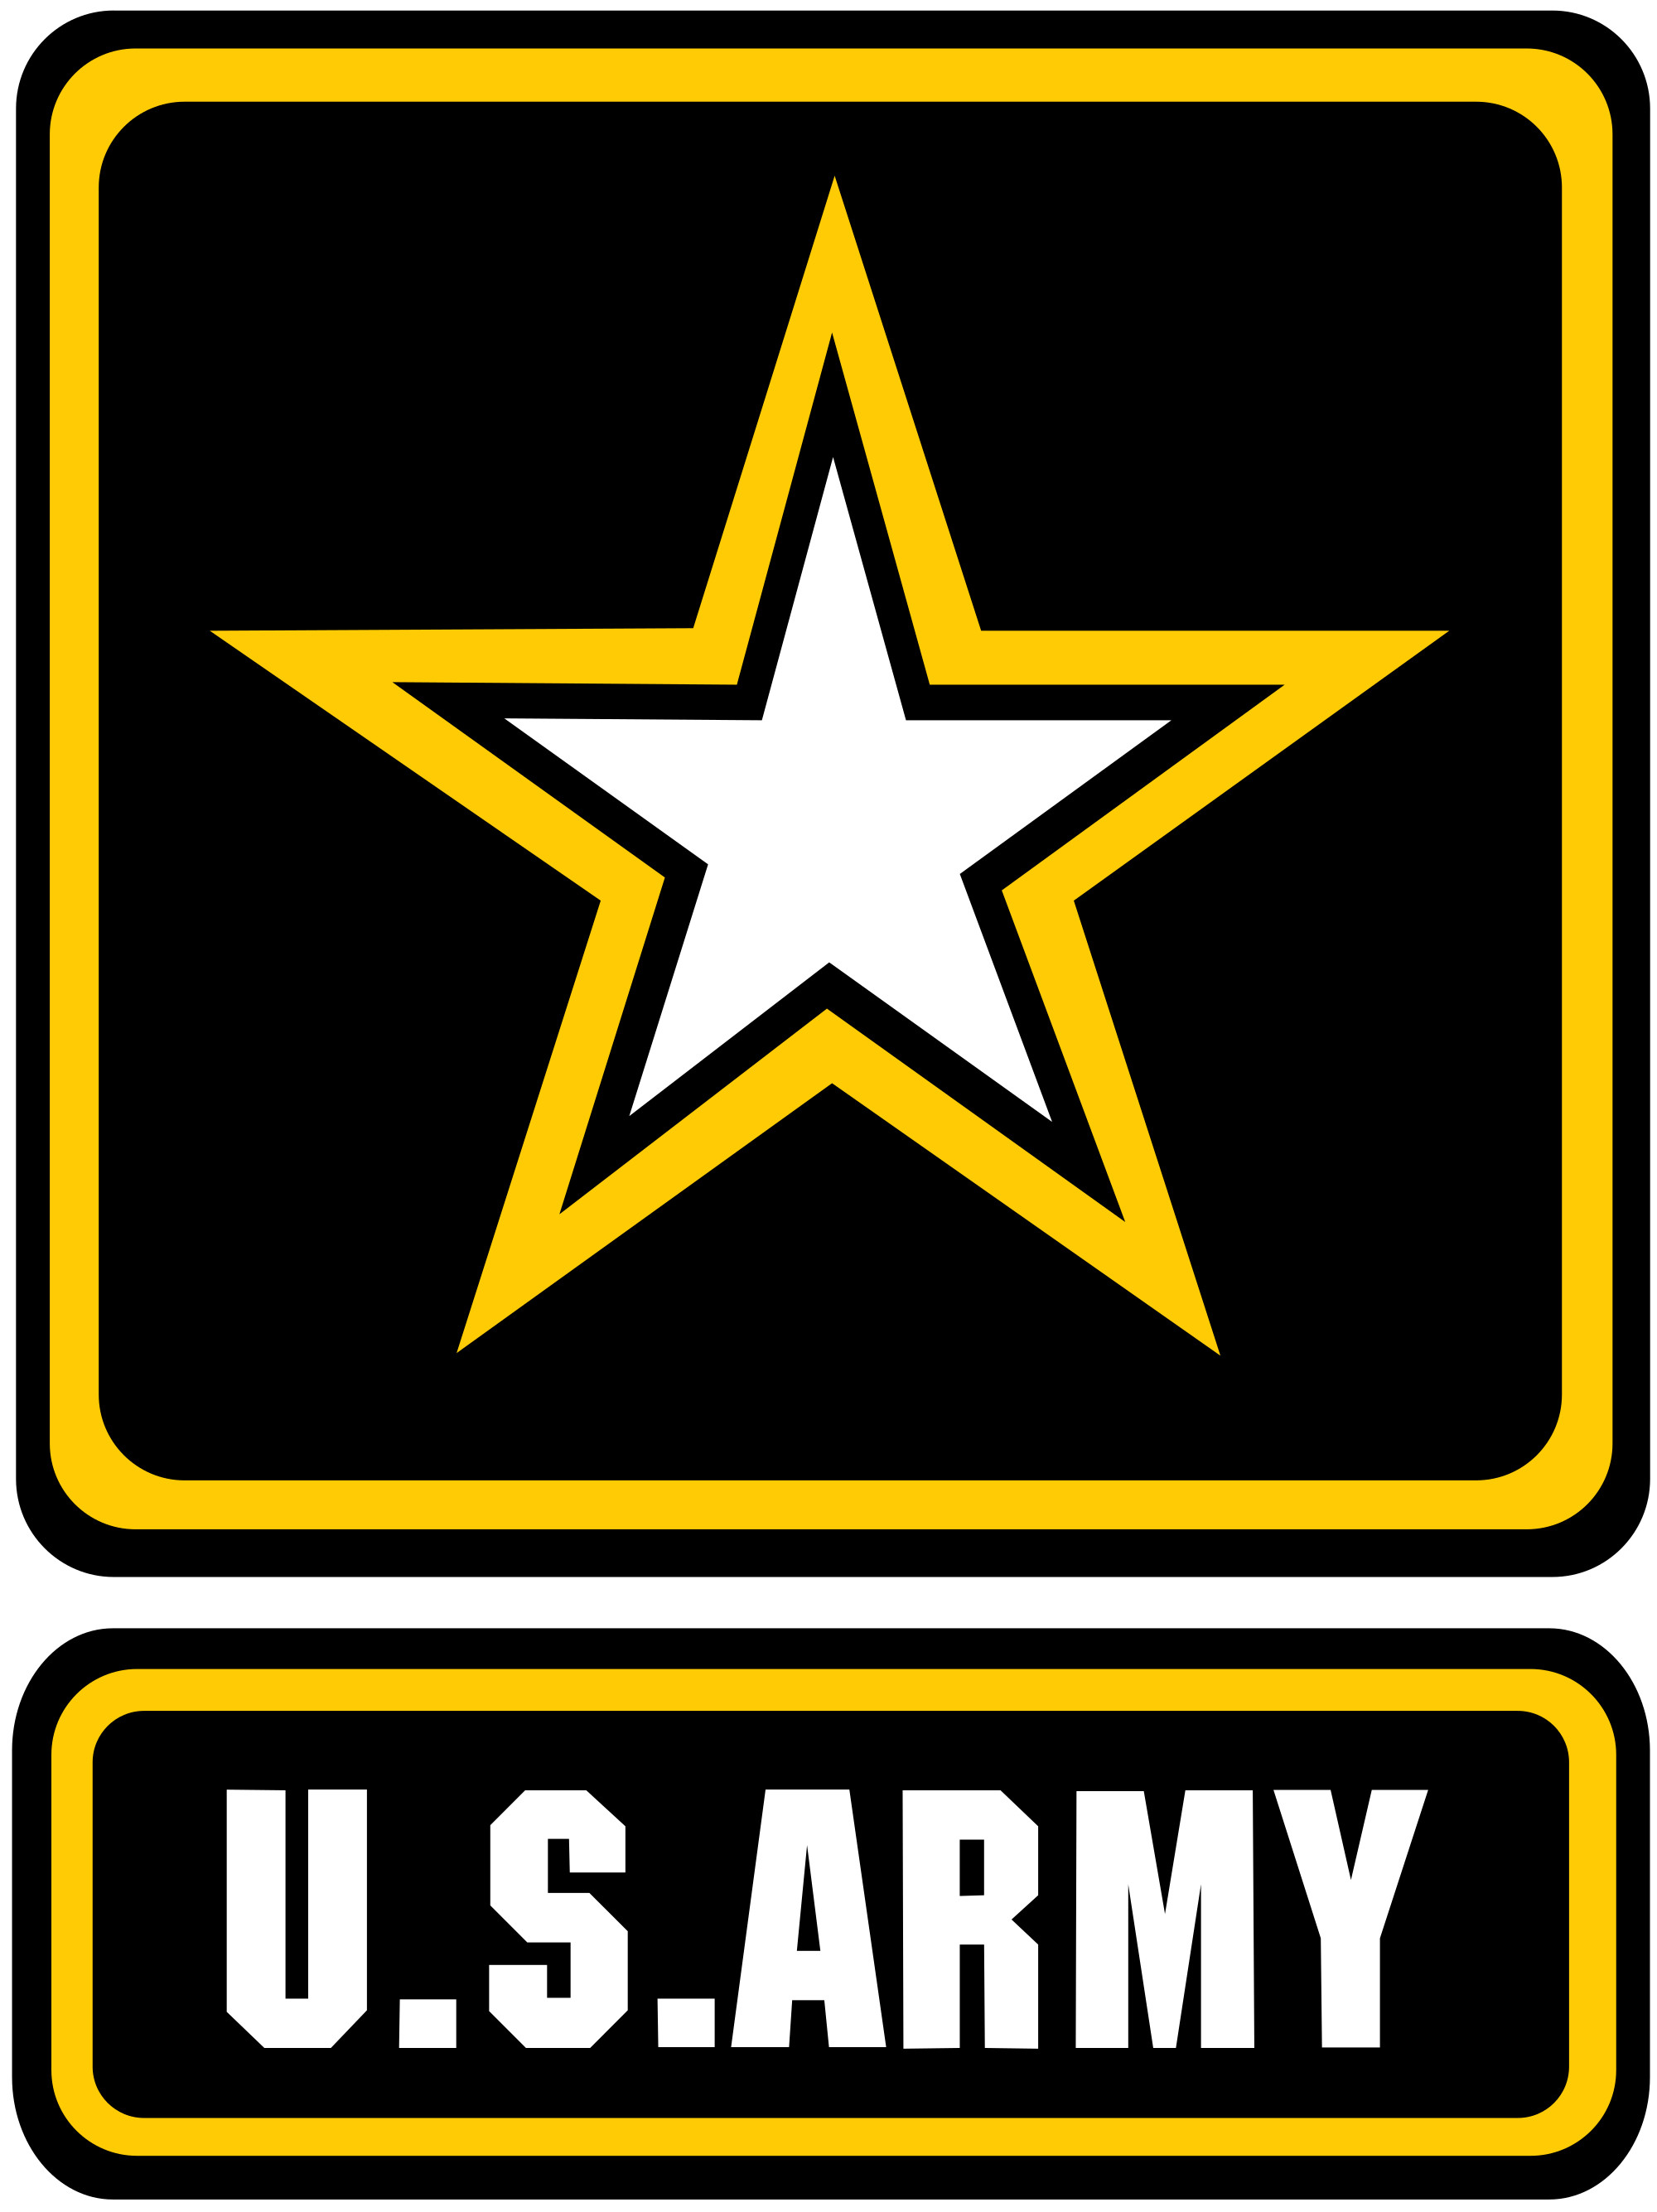 US Army Logo Wallpaper (58+ images)